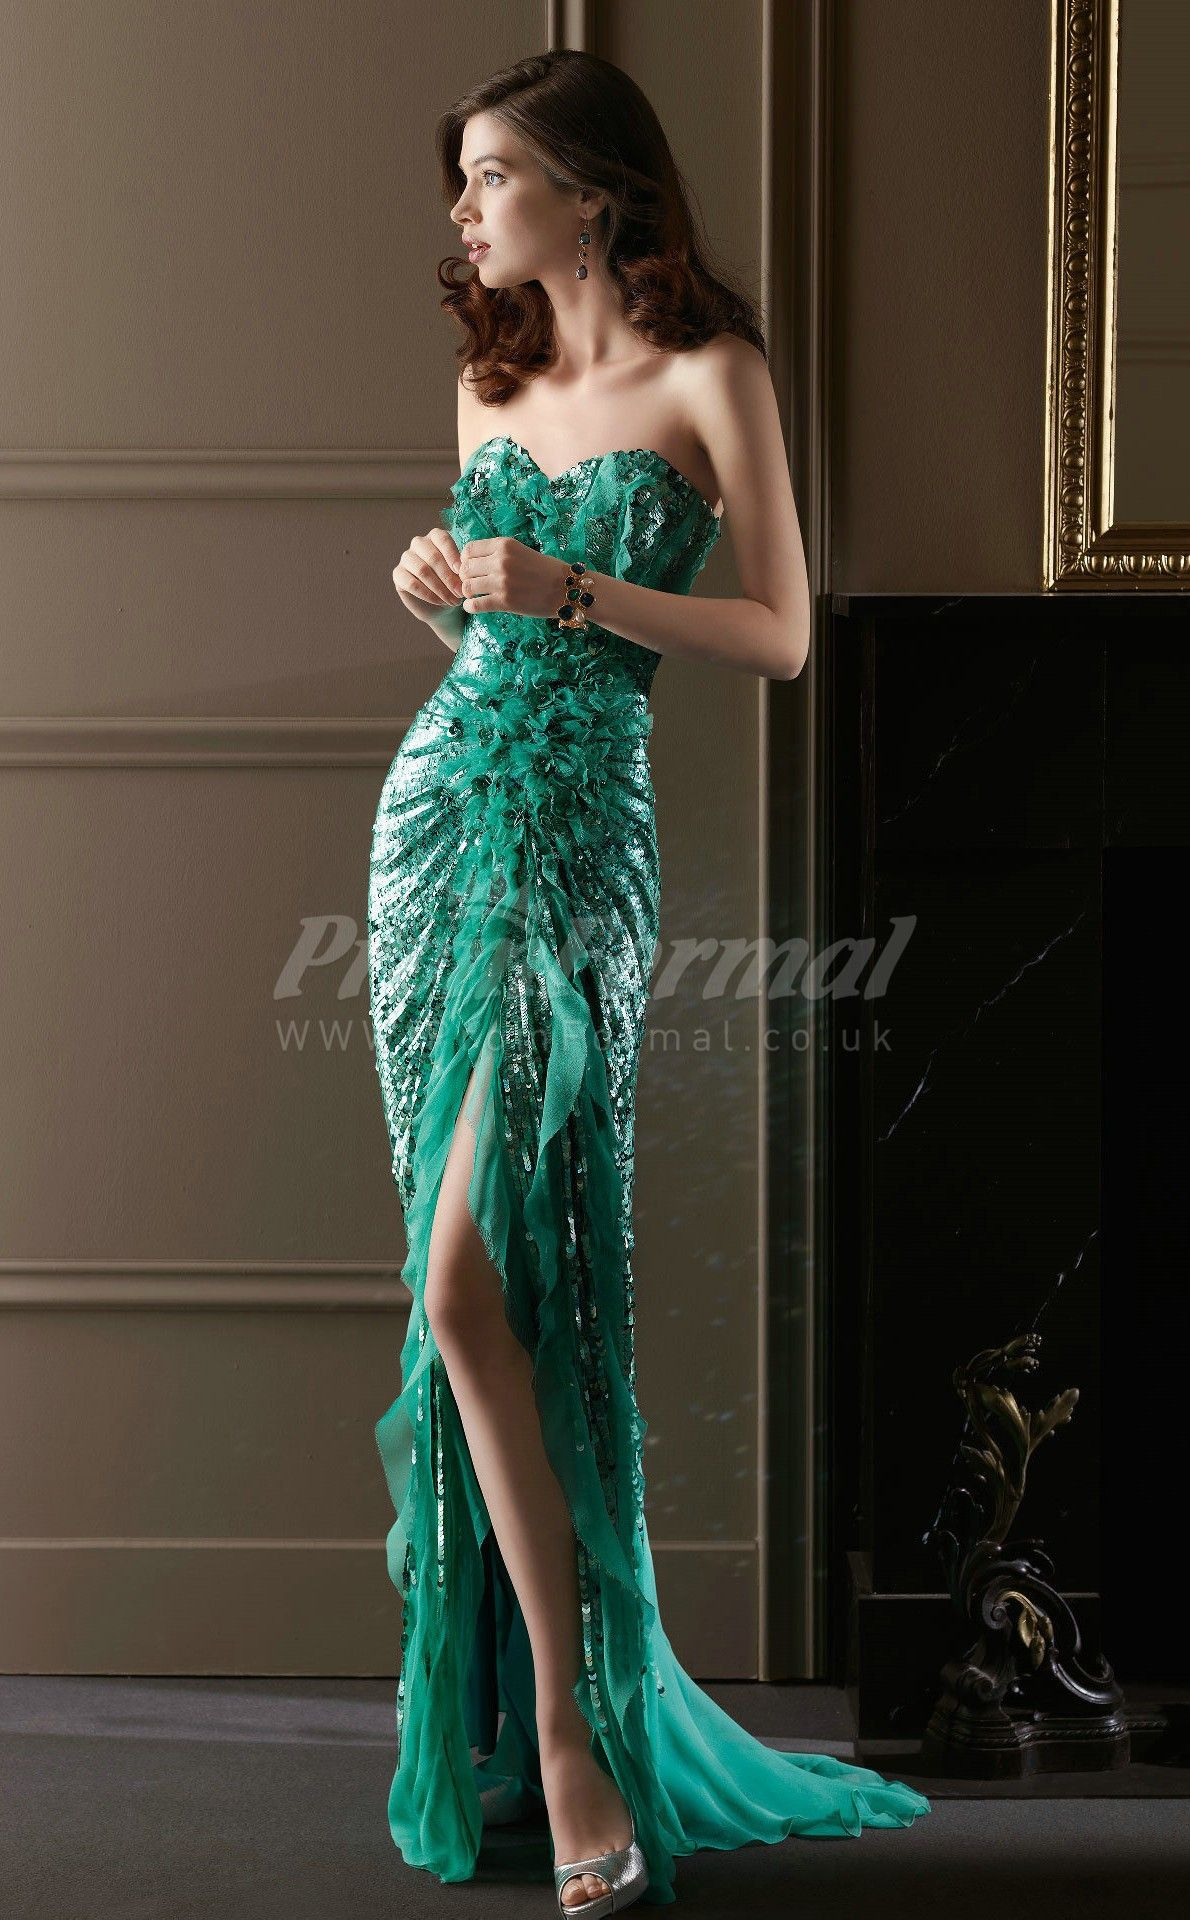 Long prom dresses cute outfits clothing etc pinterest